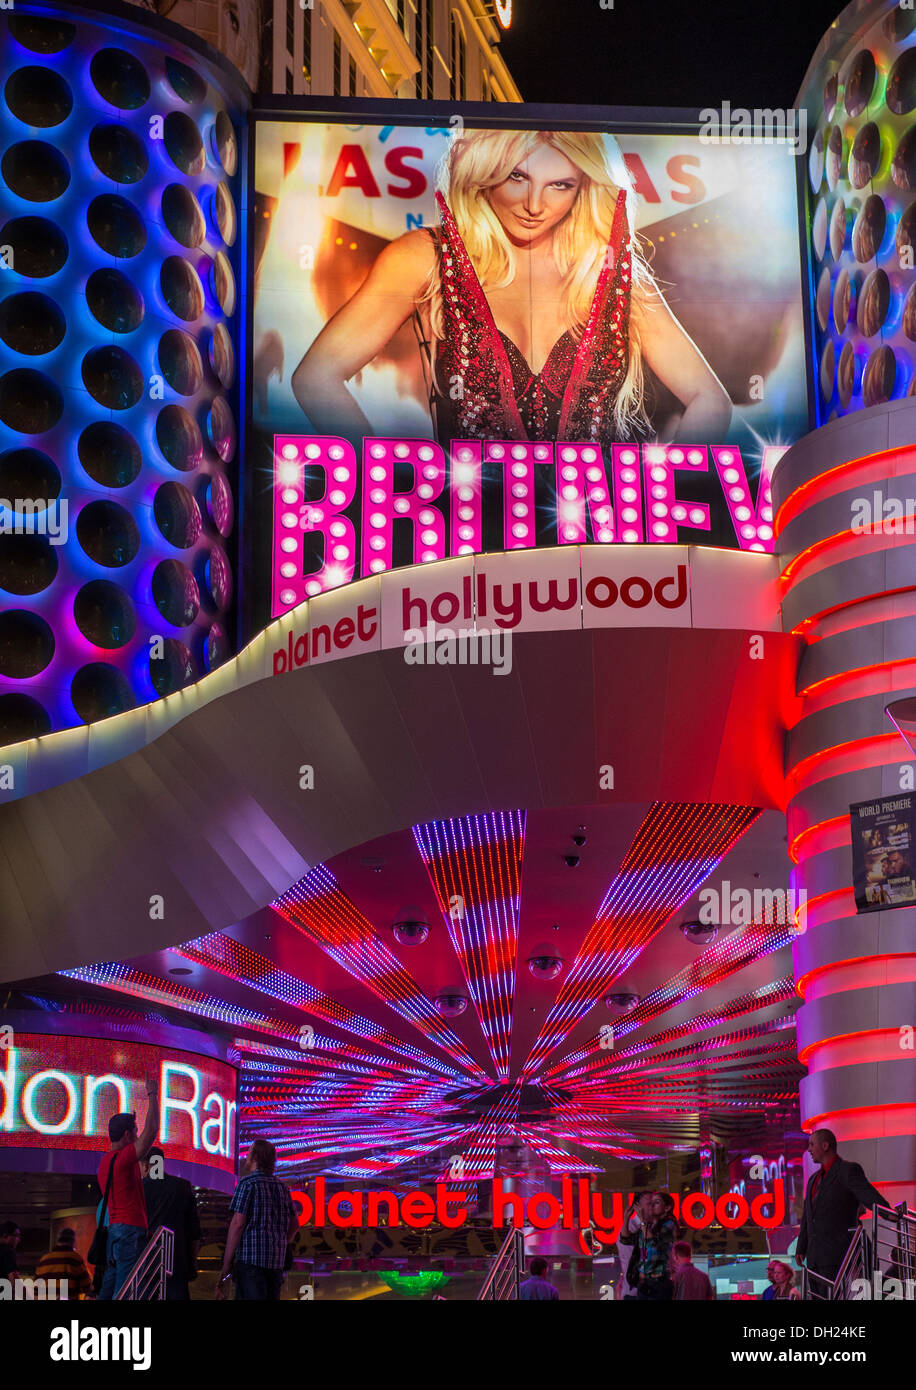 The Britney Spears Show Poster At Planet Hollywood Resort In Las Stock Photo Alamy